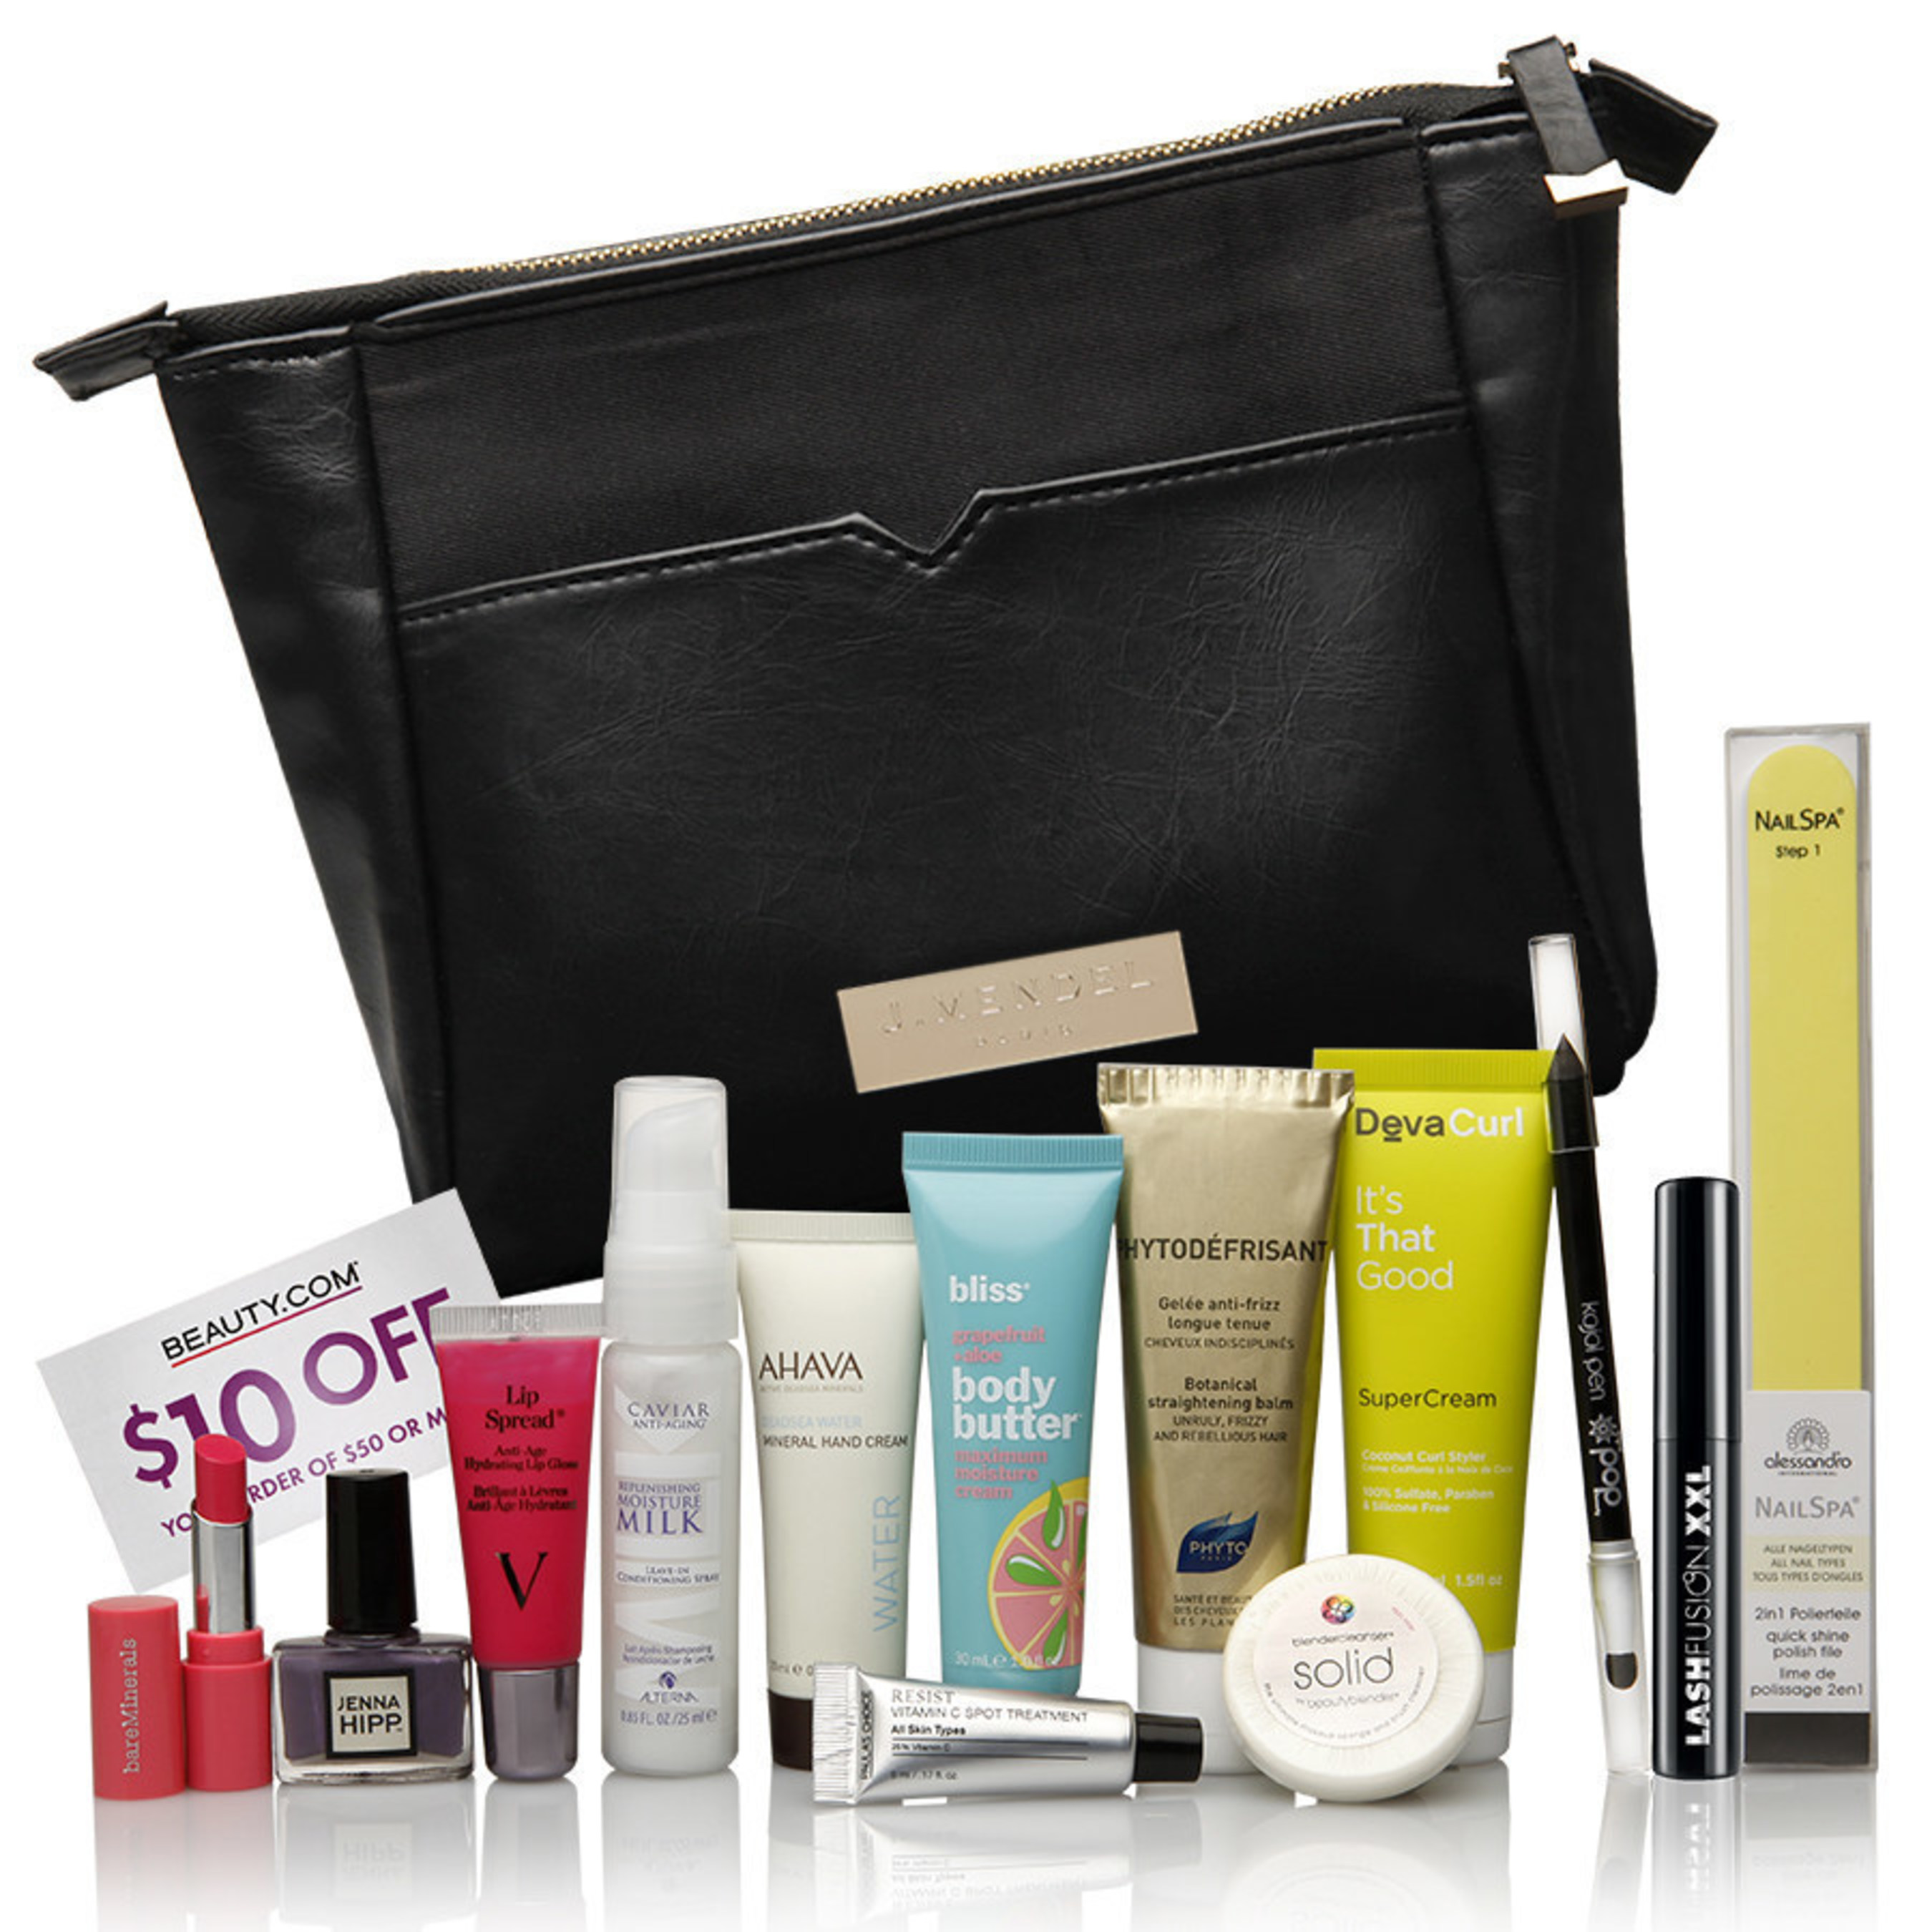 Beauty.com Debuts the J. Mendel 'Matin' Vanity Pouch